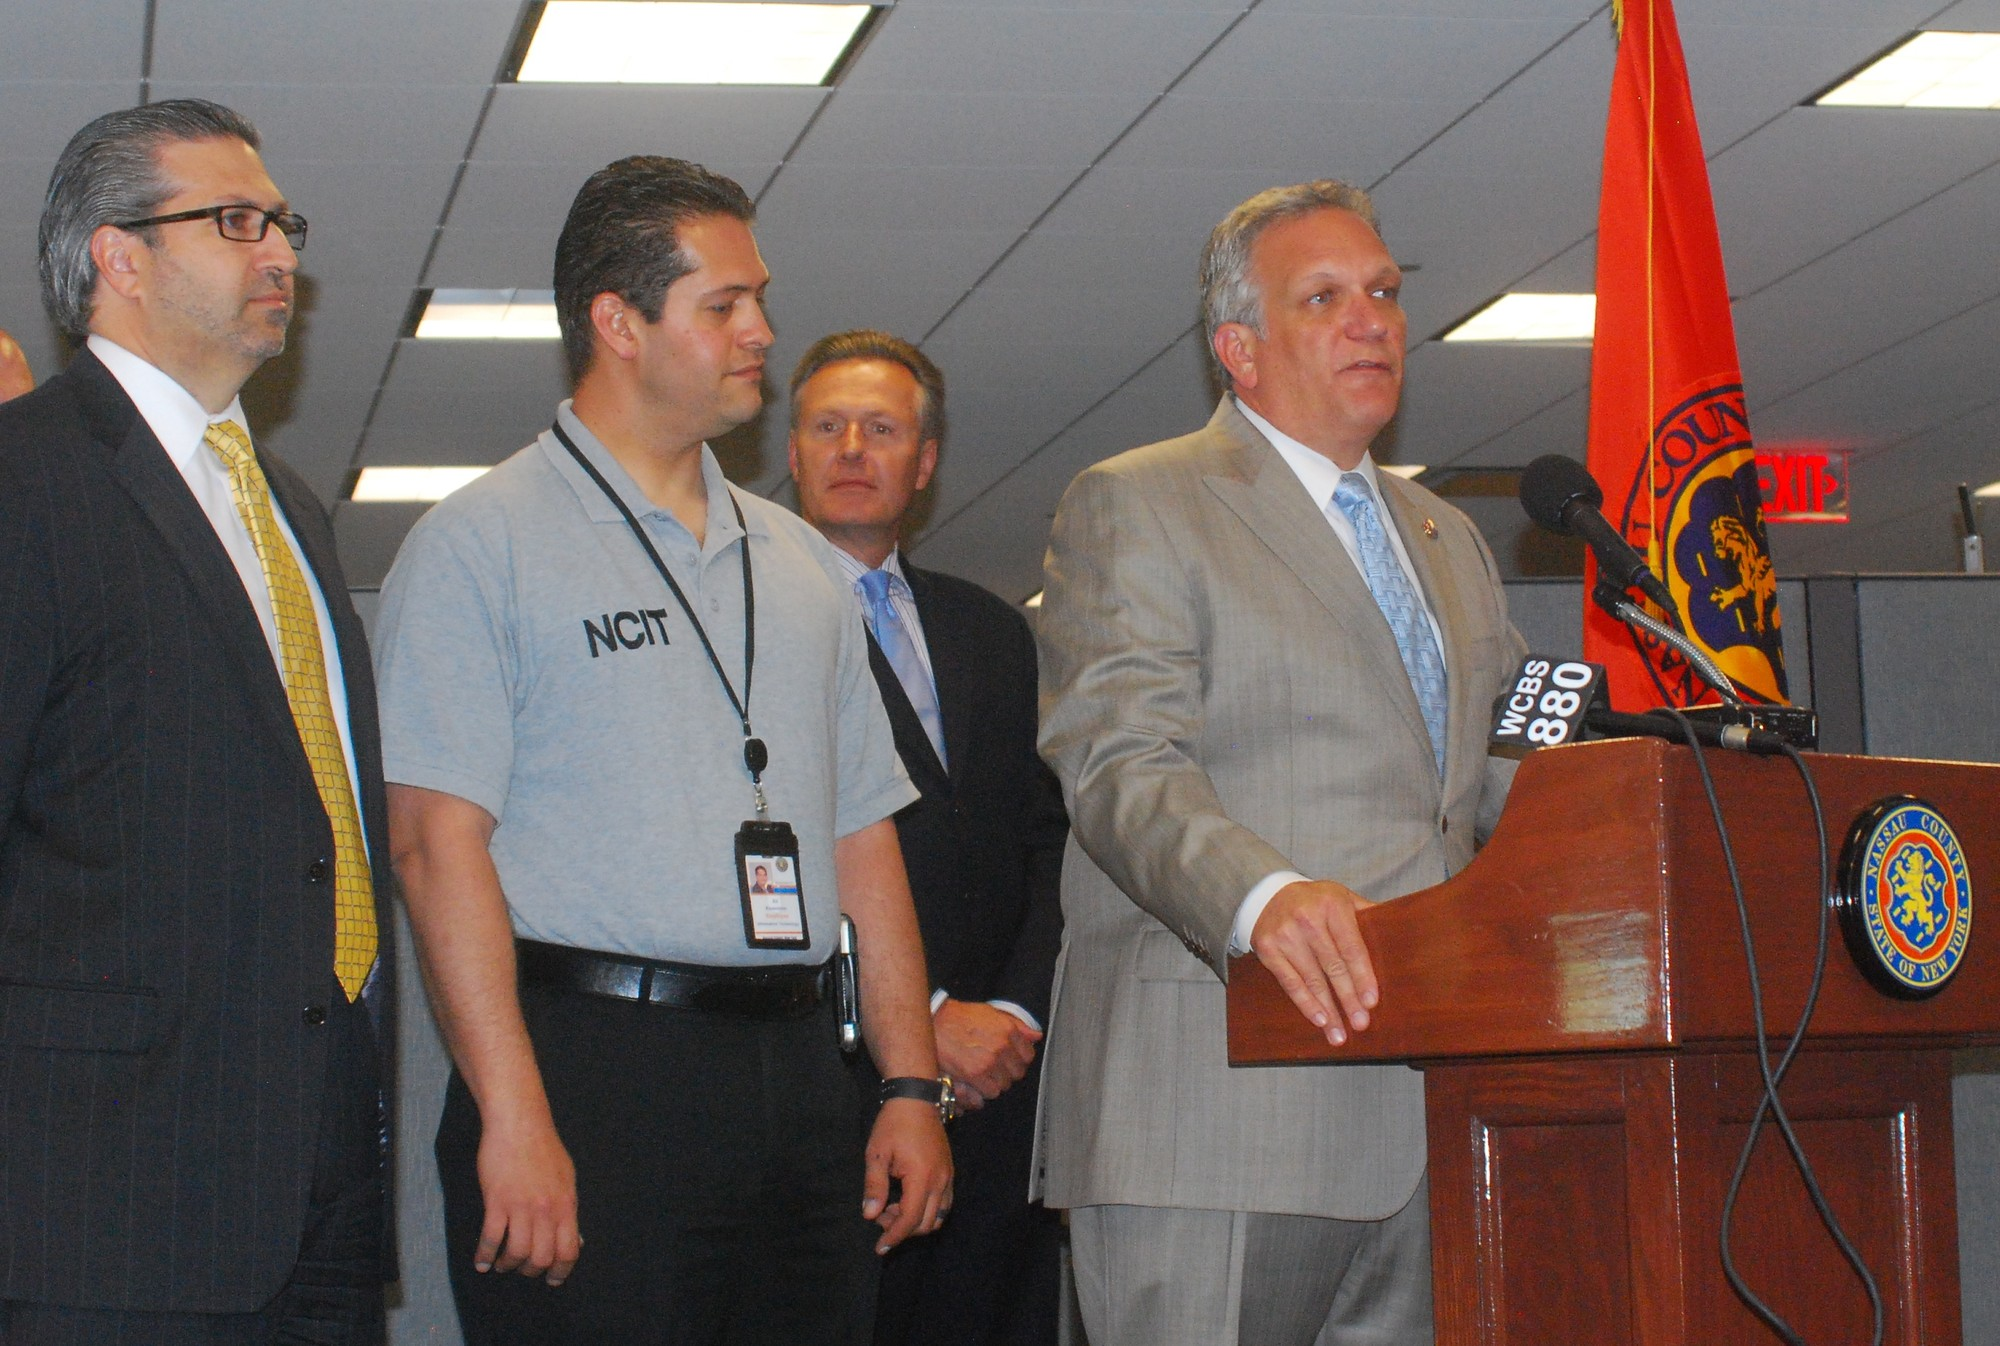 Nassau County Executive Ed Mangano came to Morrelly Center for Homeland Security in Bethpage to announce contingency plans in the event of a Long Island Rail Road strike on July  20. The county plans to offer free Wi-Fi access to roughly 200 commuters, among other measures.